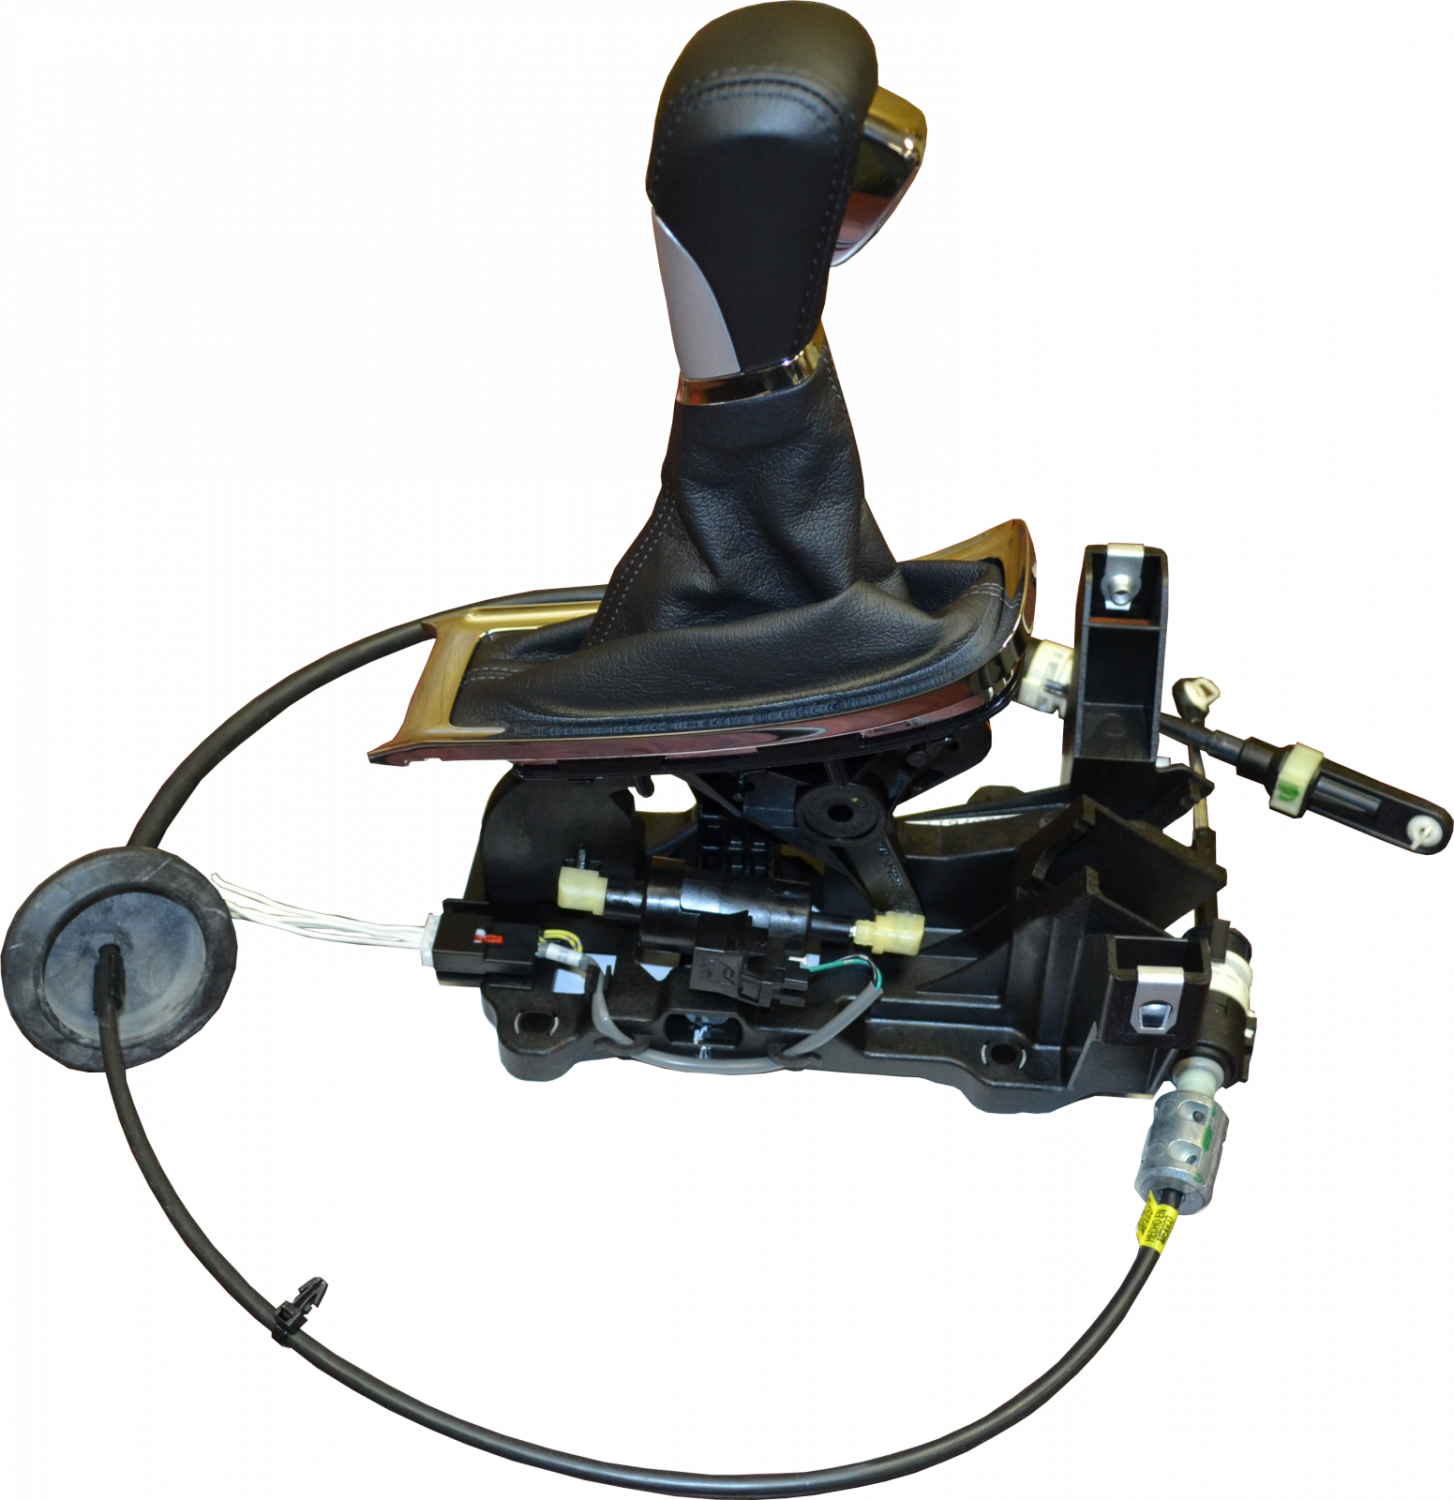 GMP-7613 - 6L80/90e & 8L90e Floor Shifter Assembly with Tap